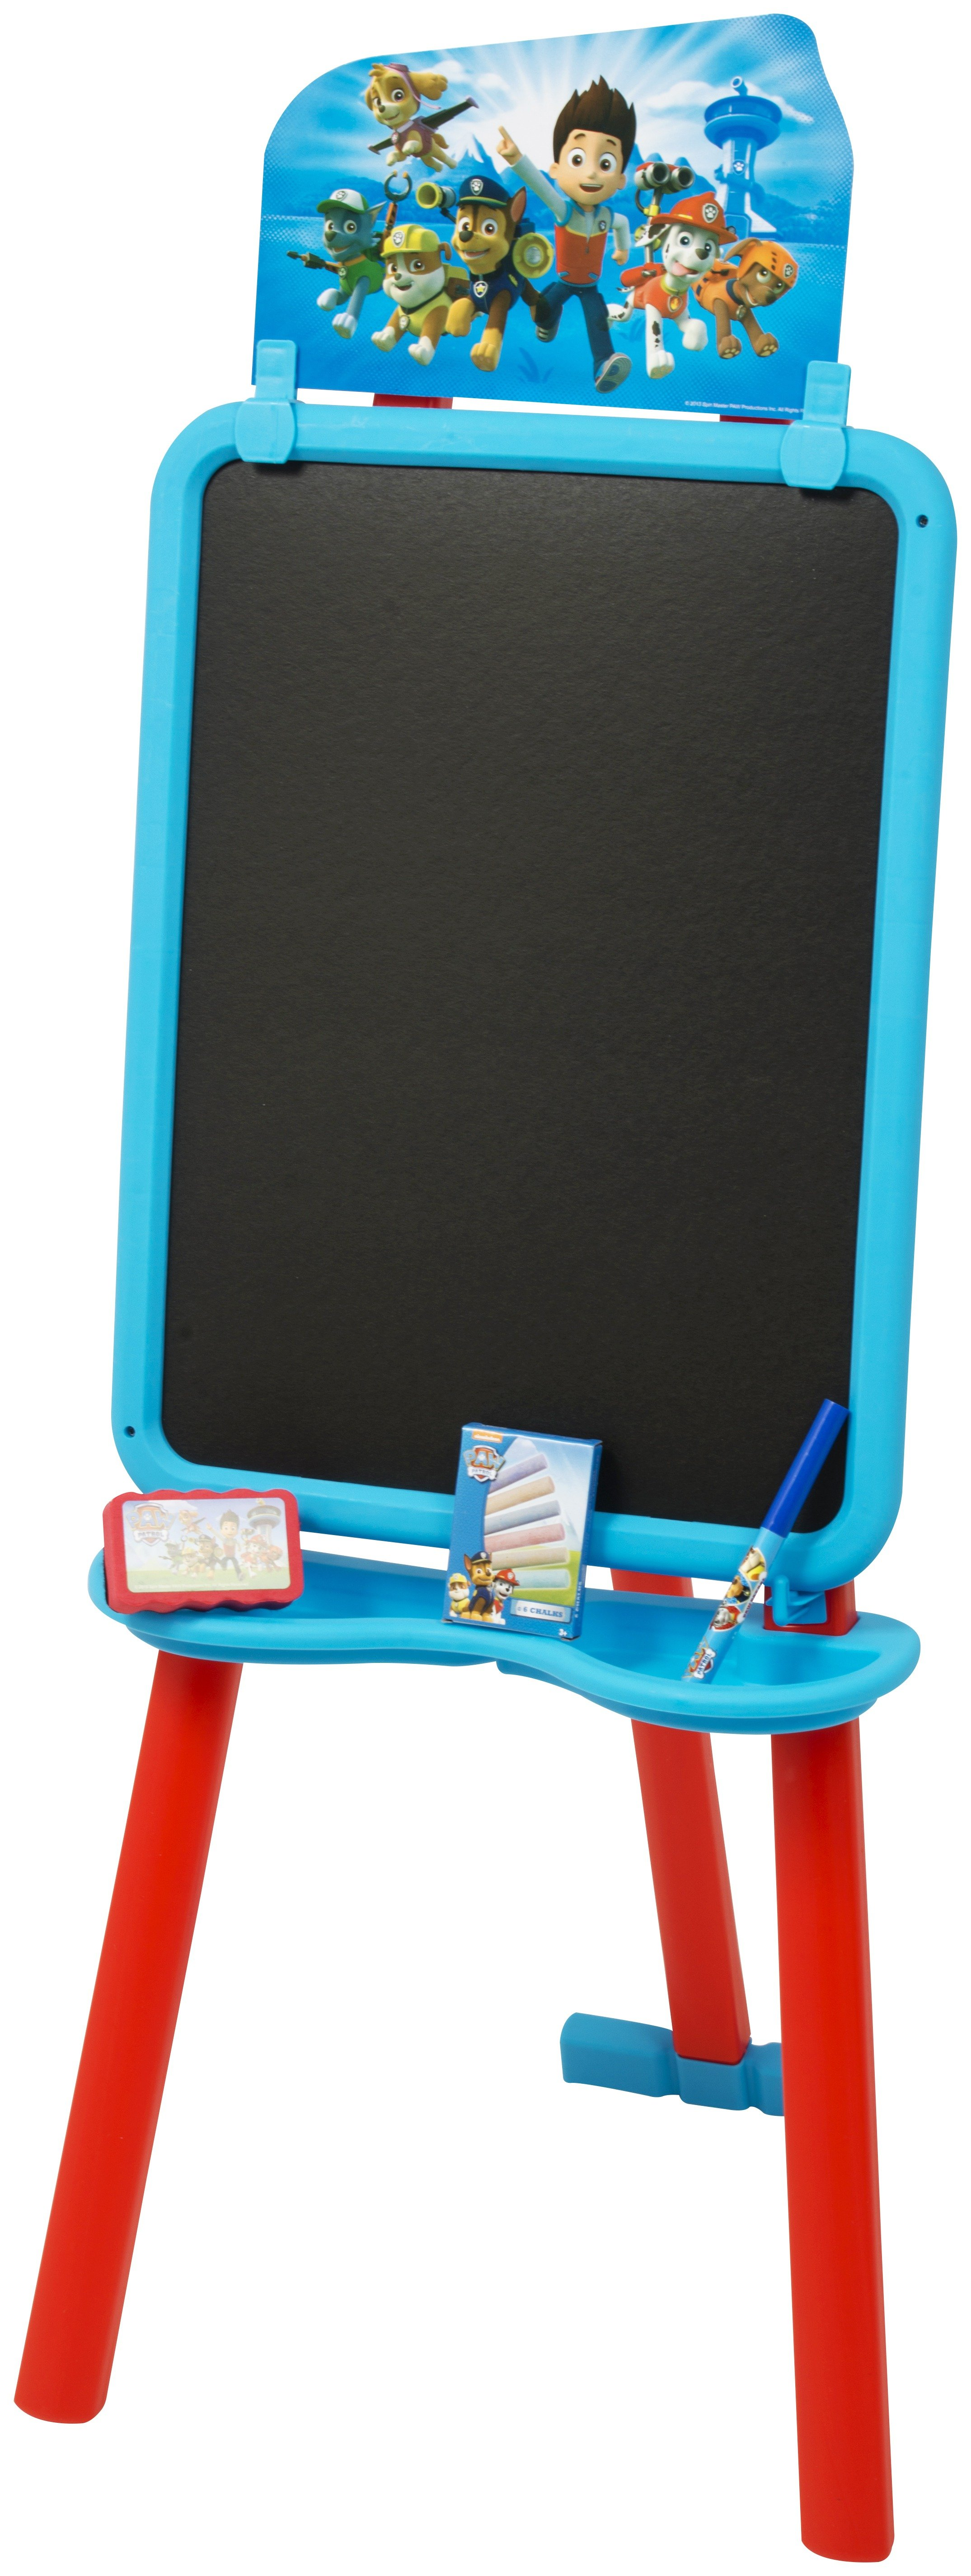 Paw Patrol Easel and Arts & Crafts Bundle - Blue